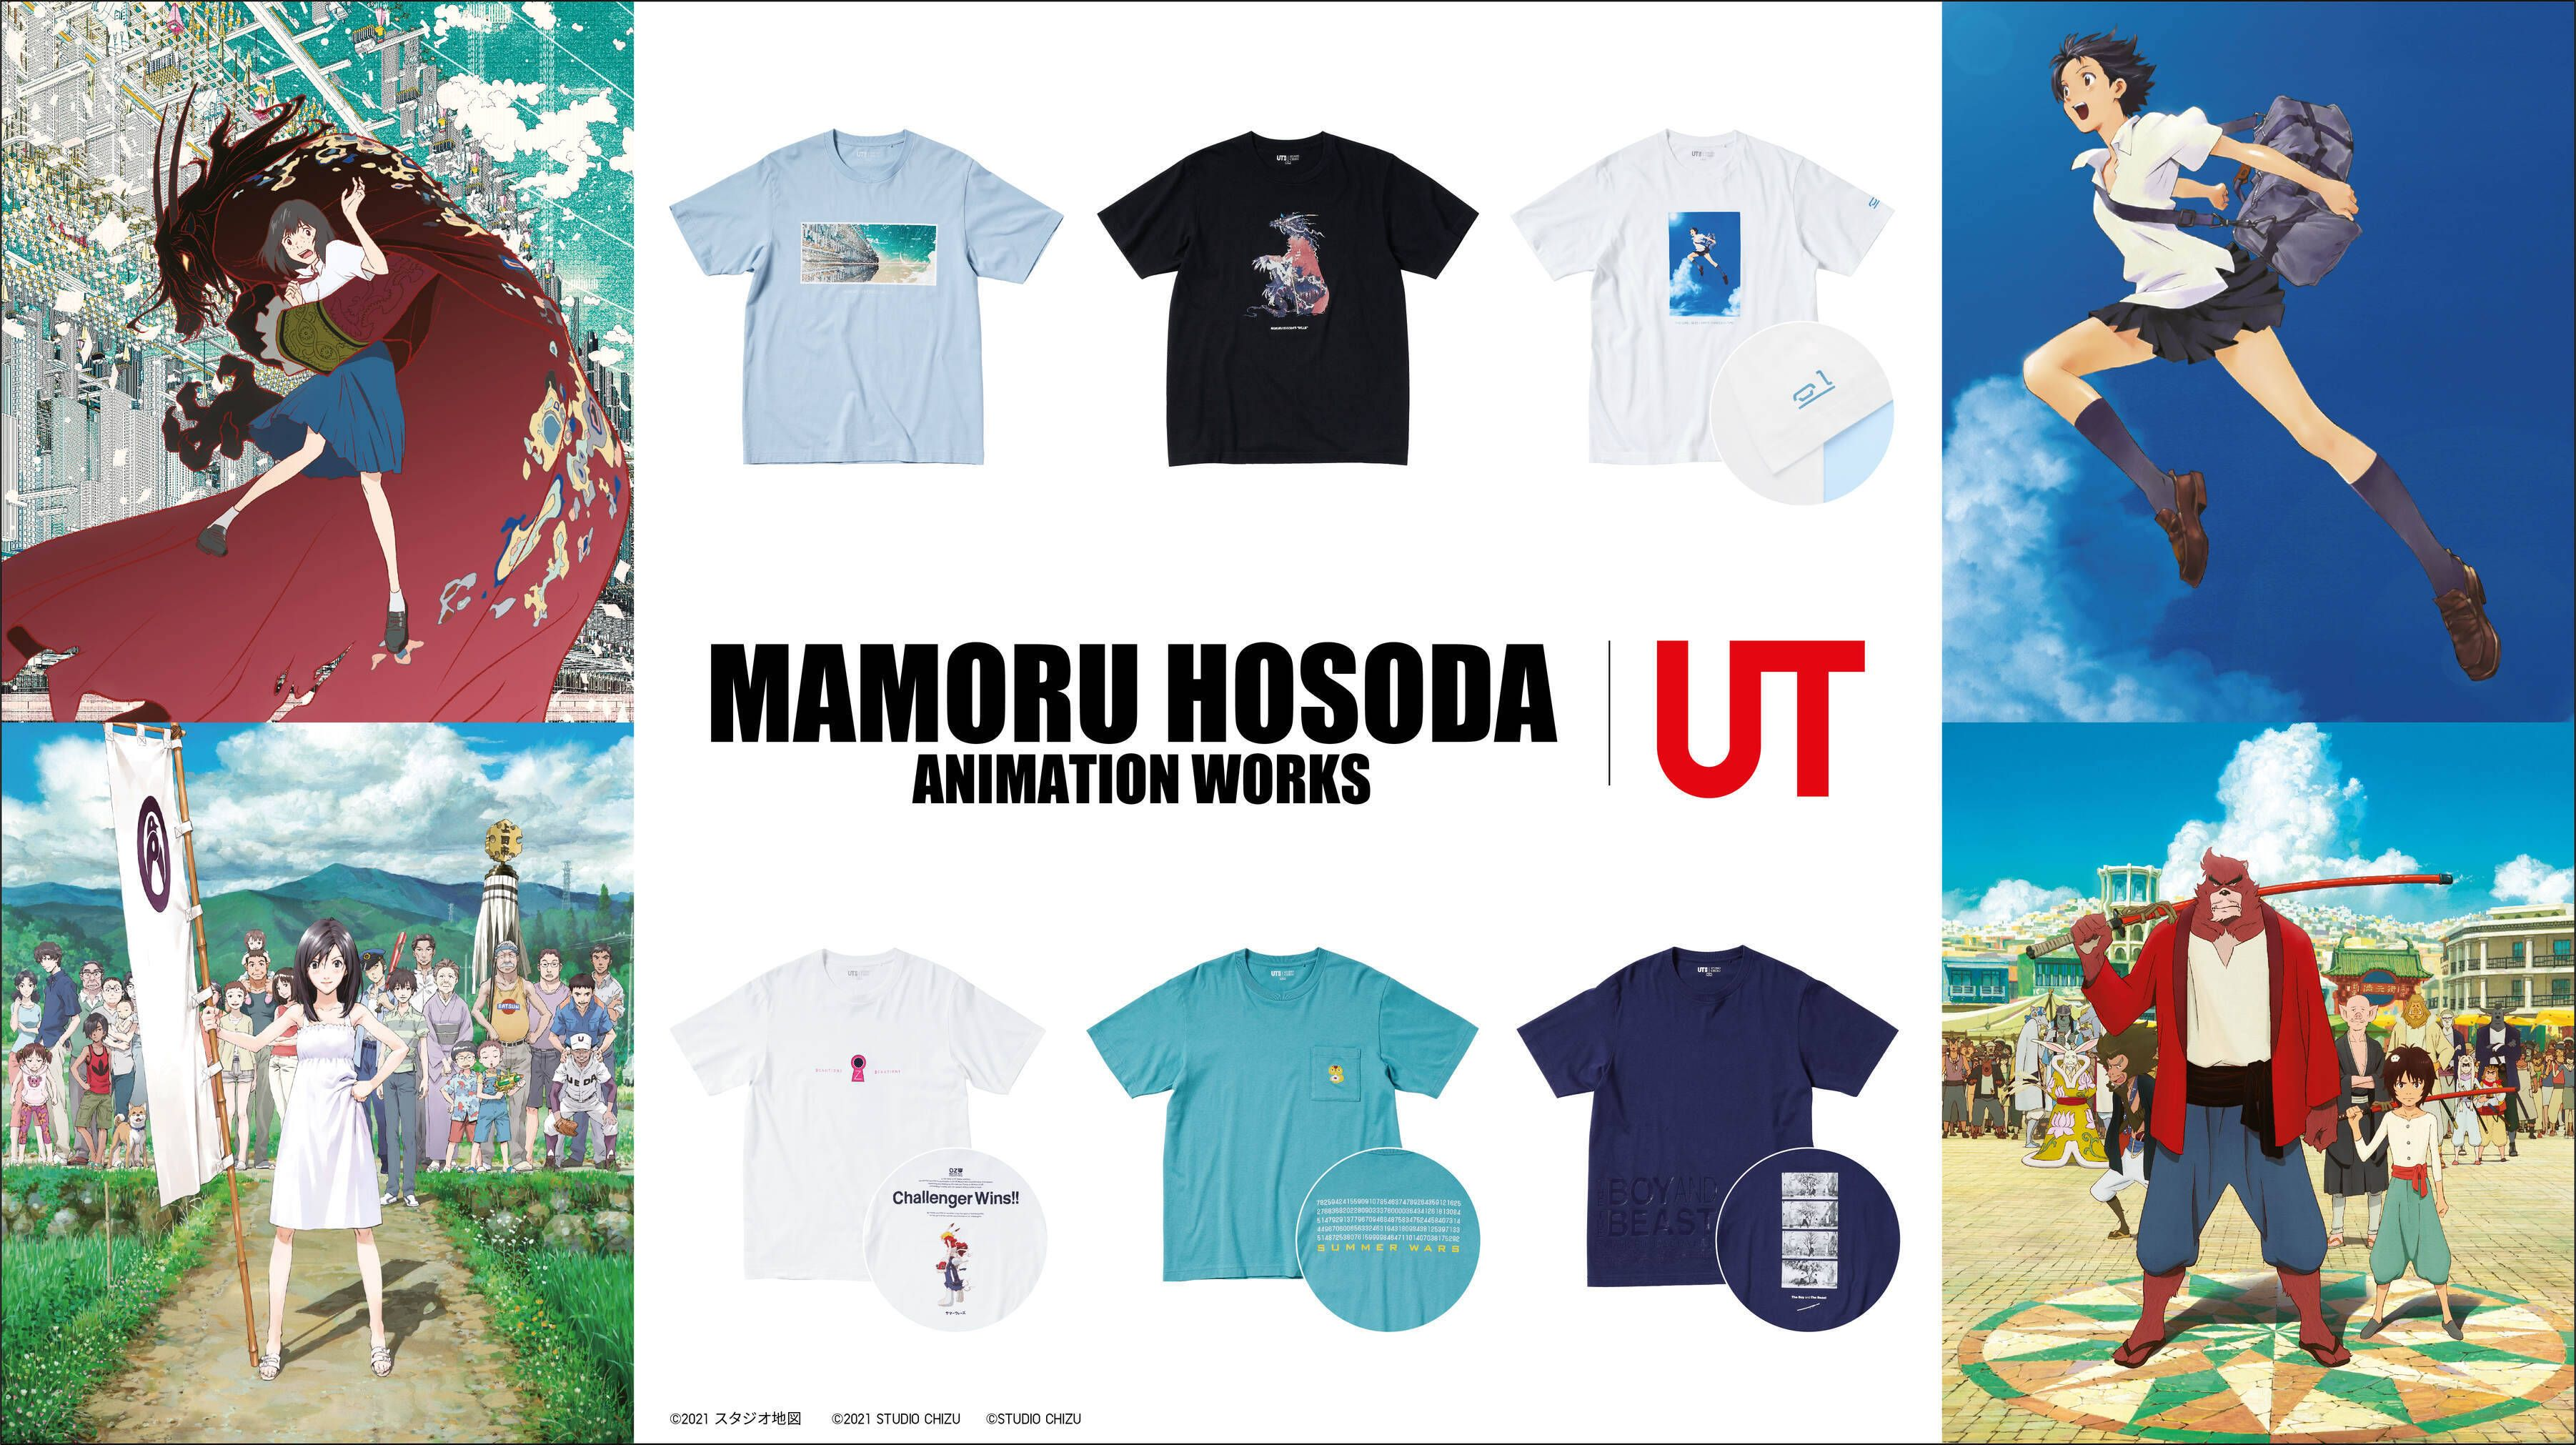 Uniqlo reschedules launch of awaited anime UT Collection photo from IGN Southeast Asia